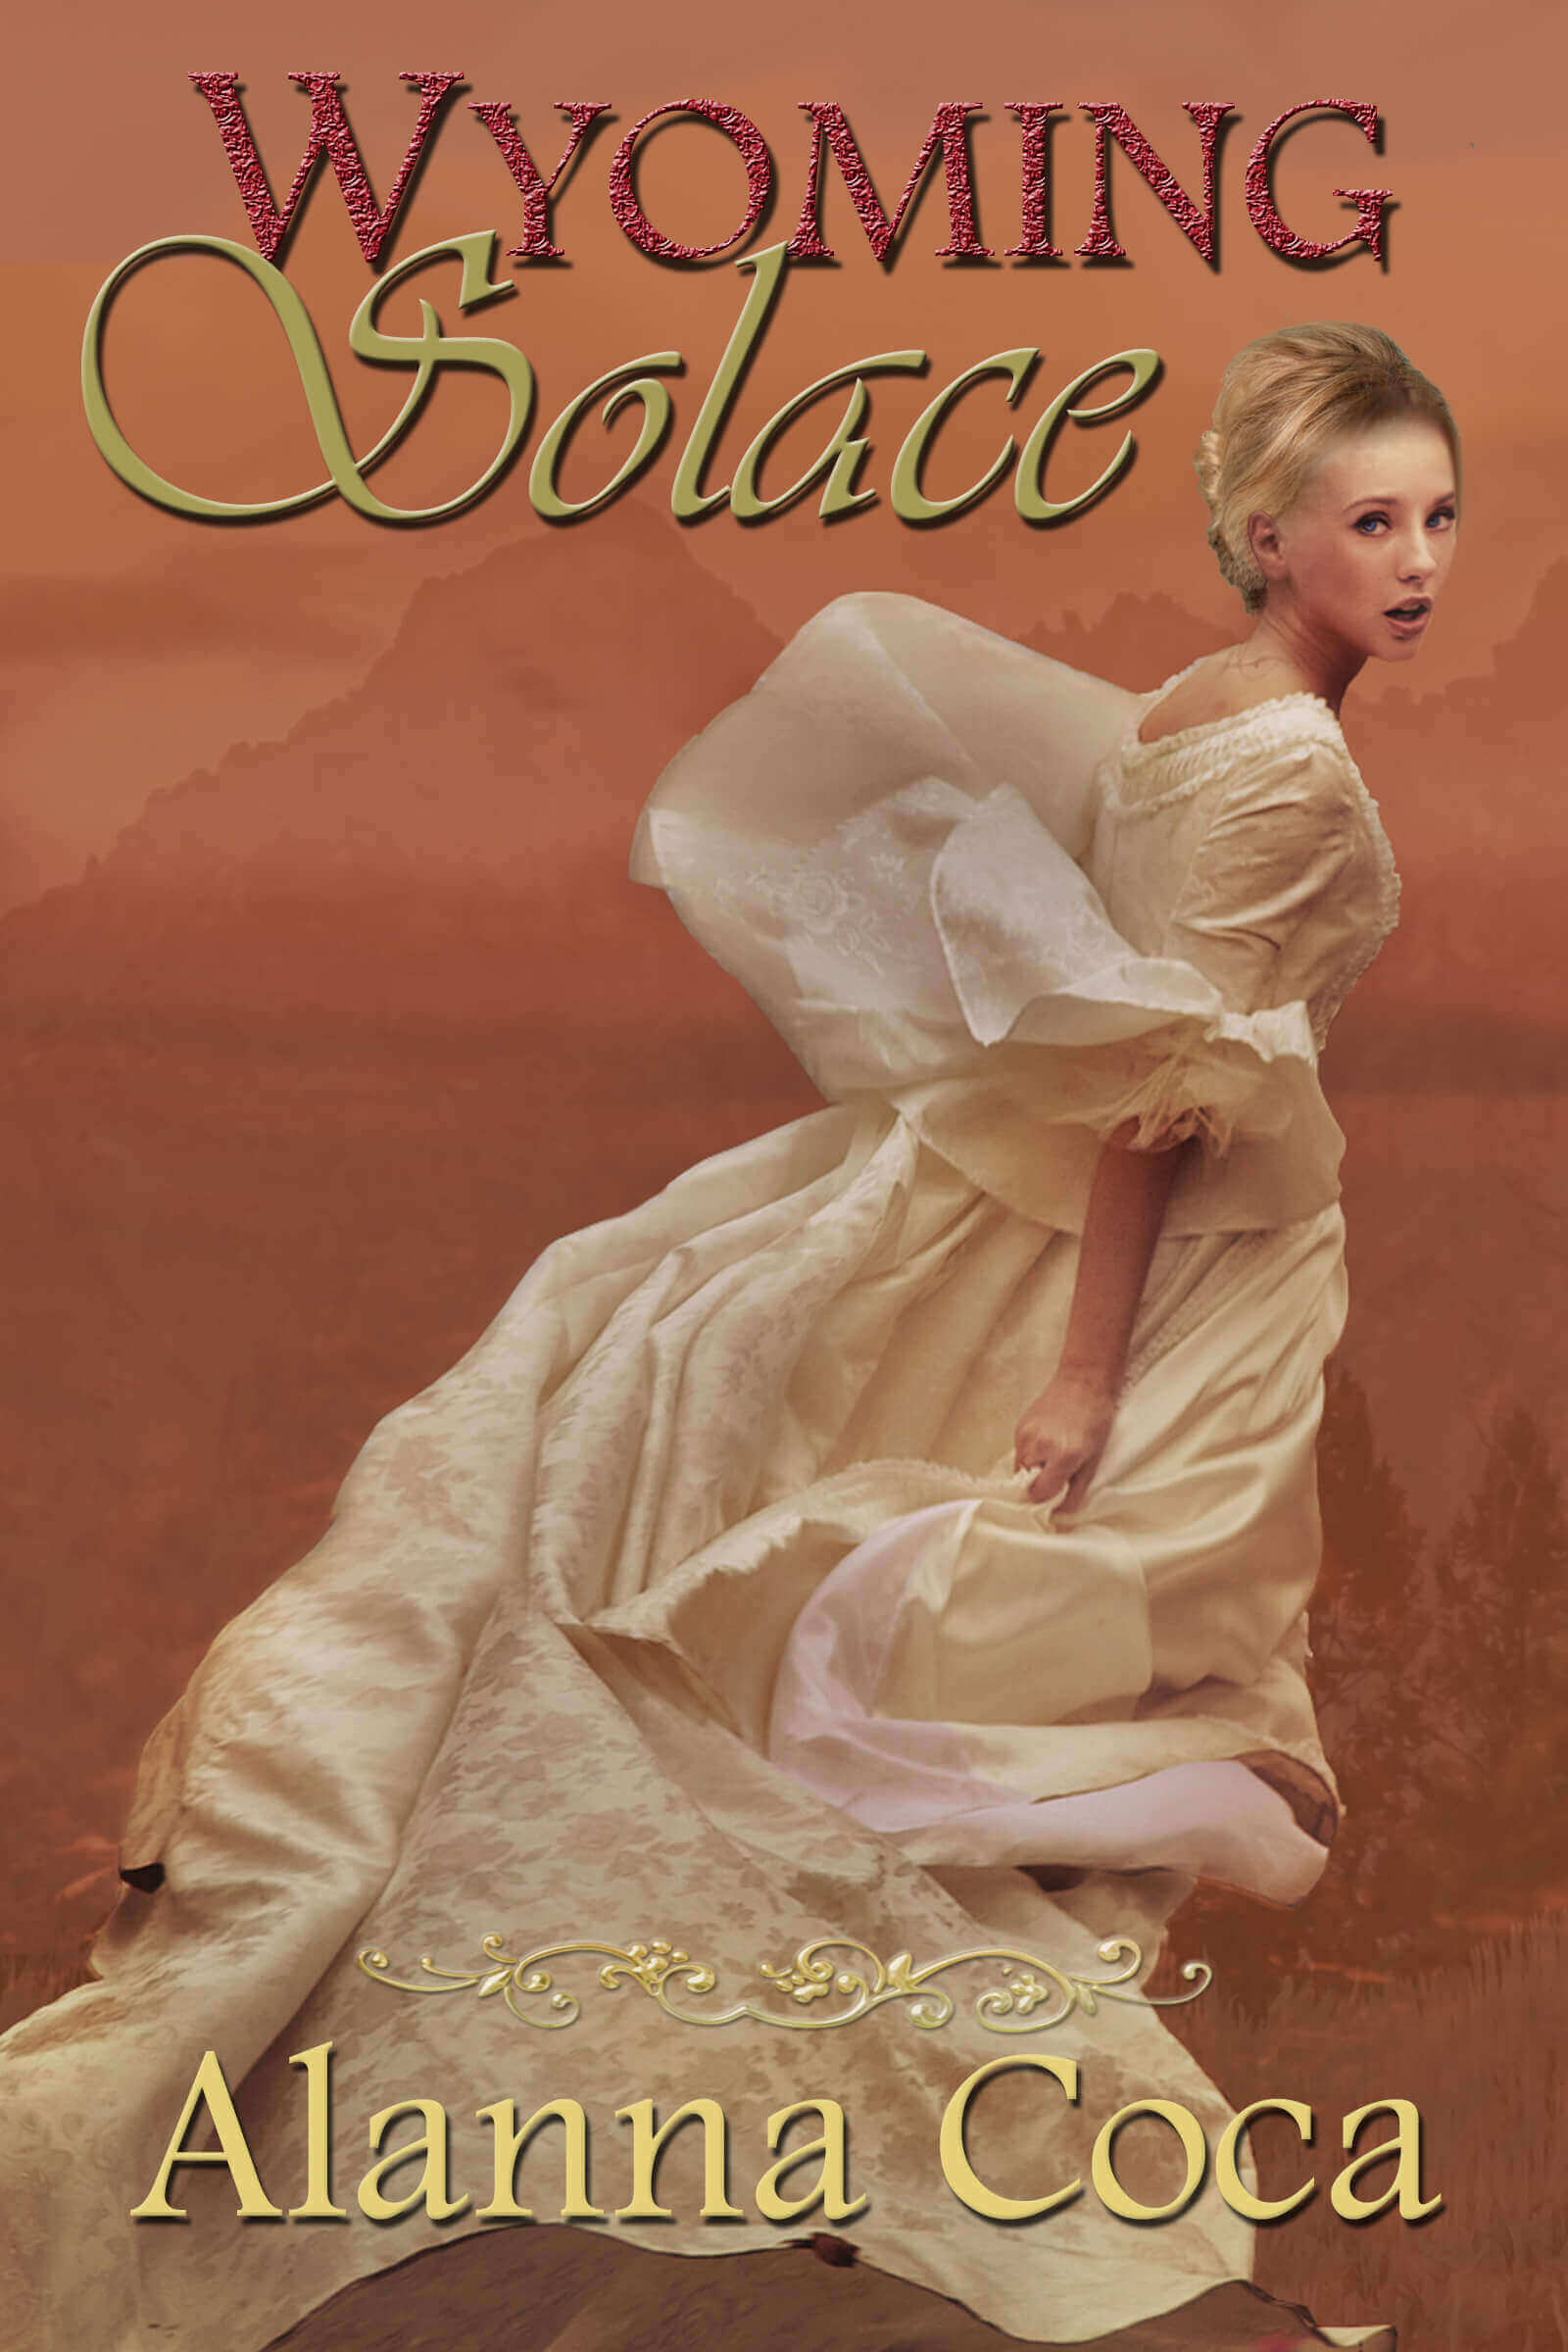 Wyoming Solace by Alanna Coca book cover